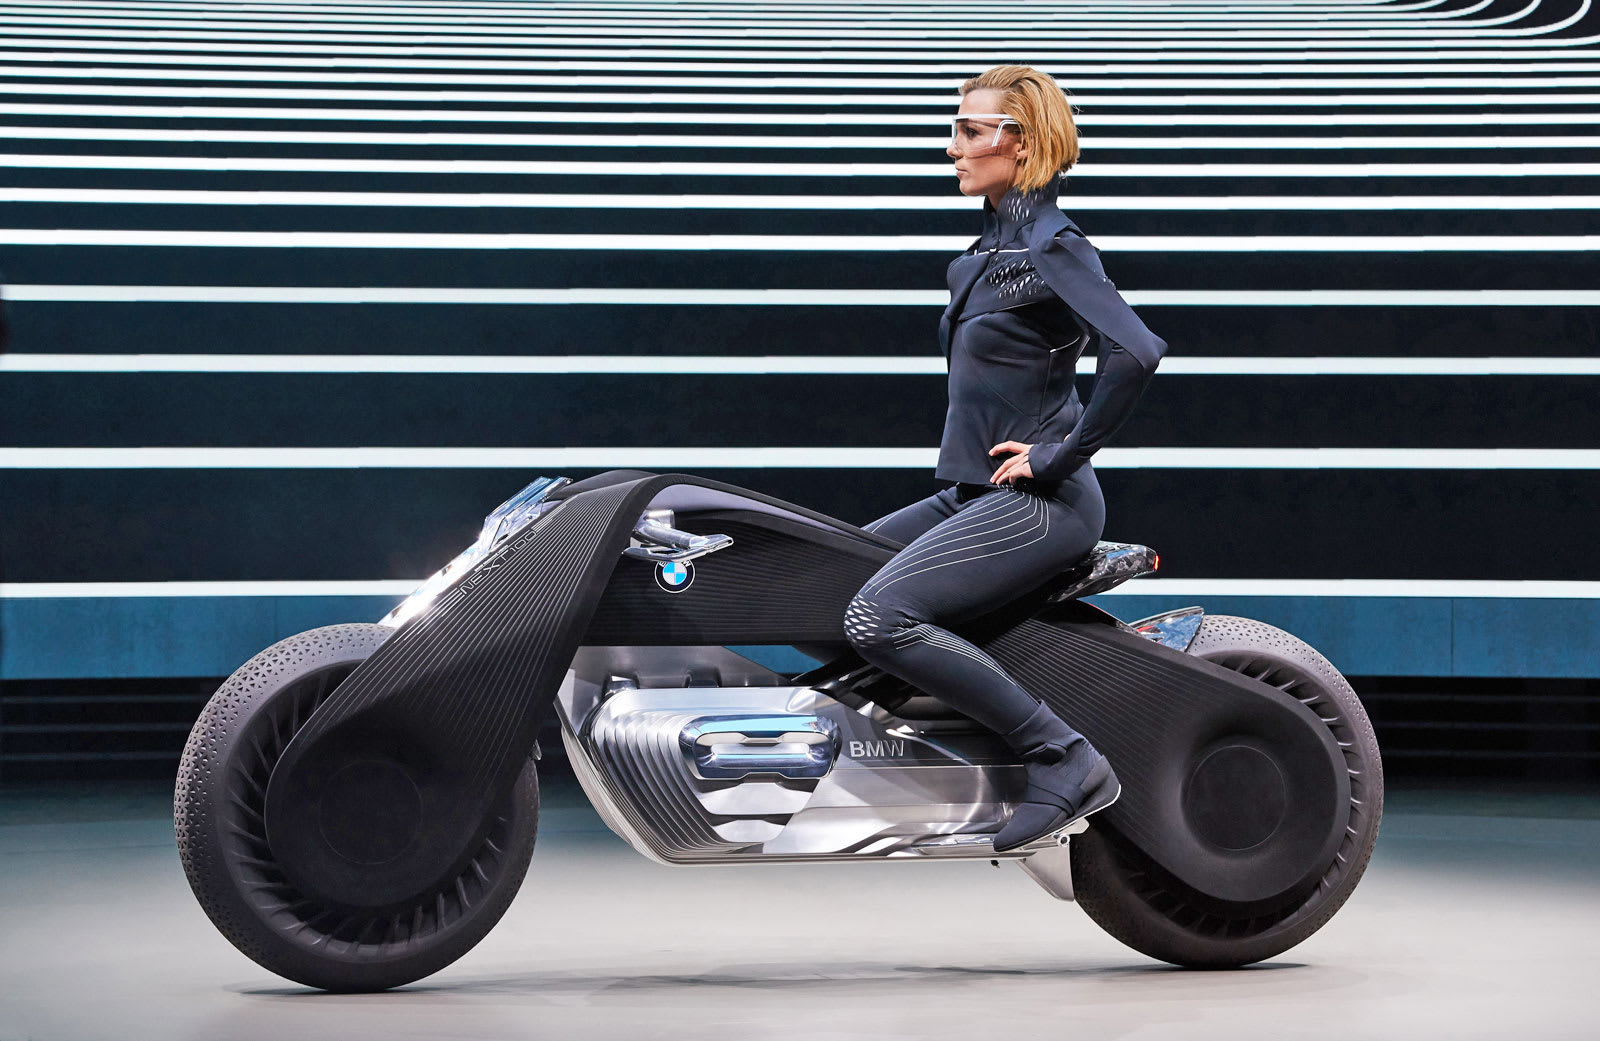 BMW's motorcycle of the future doesn't require a helmet